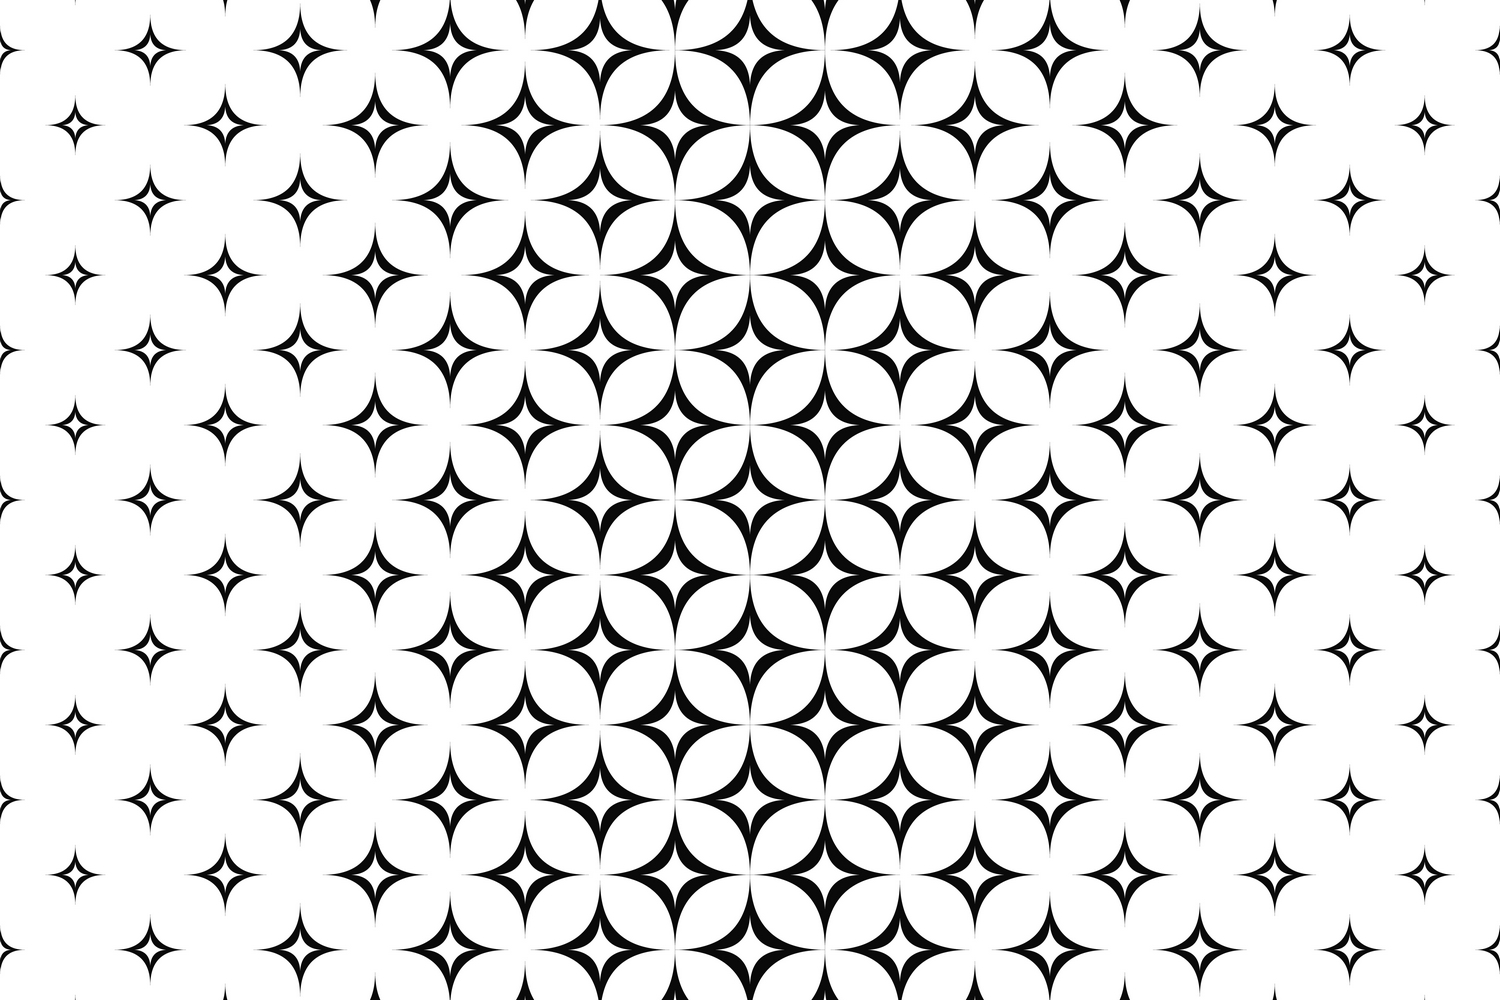 15 curved star patterns (EPS, AI, SVG, JPG 5000x5000) example image 3